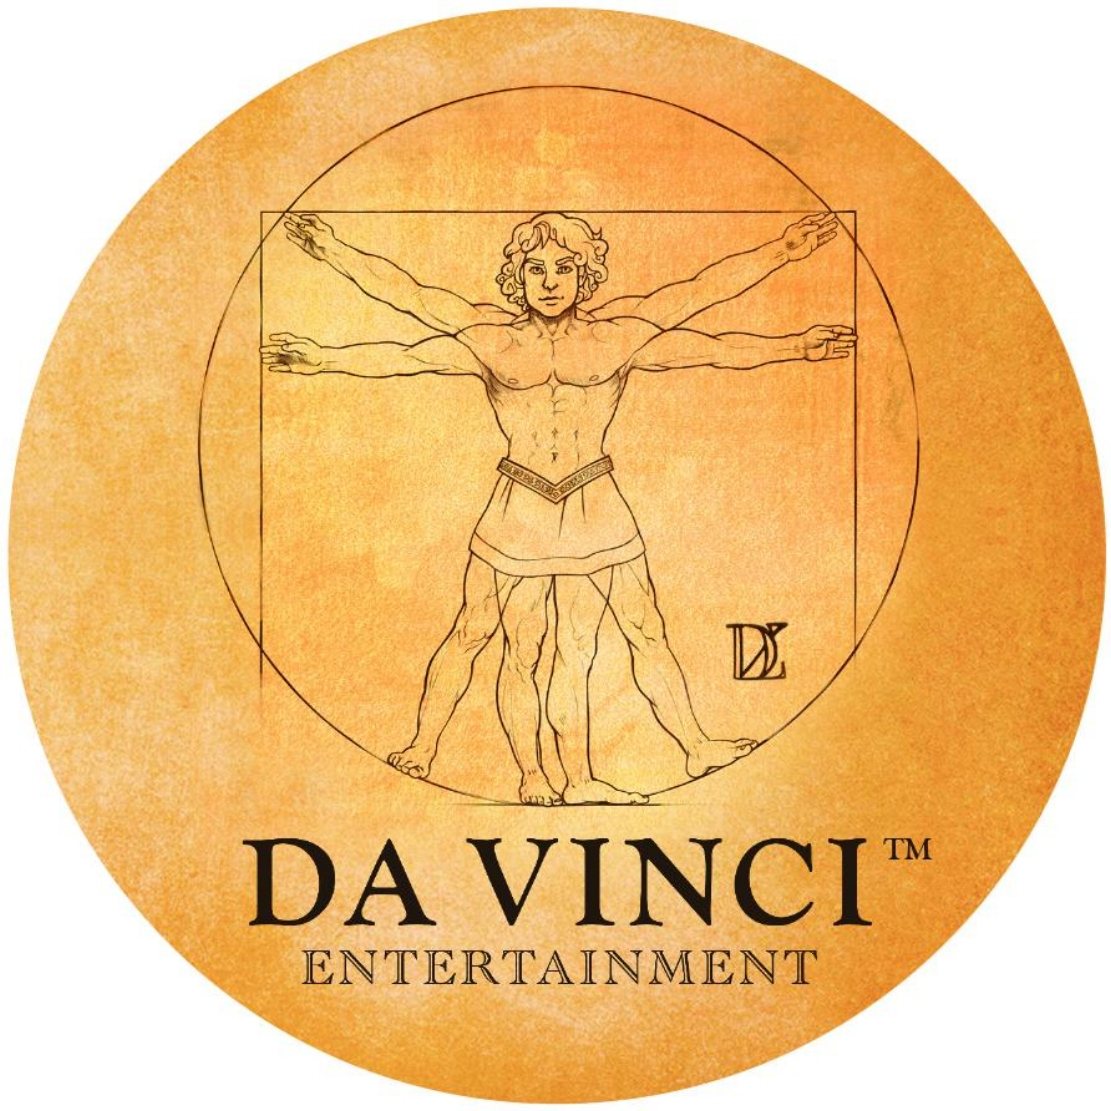 DA VINCI ENTERTAINMENT